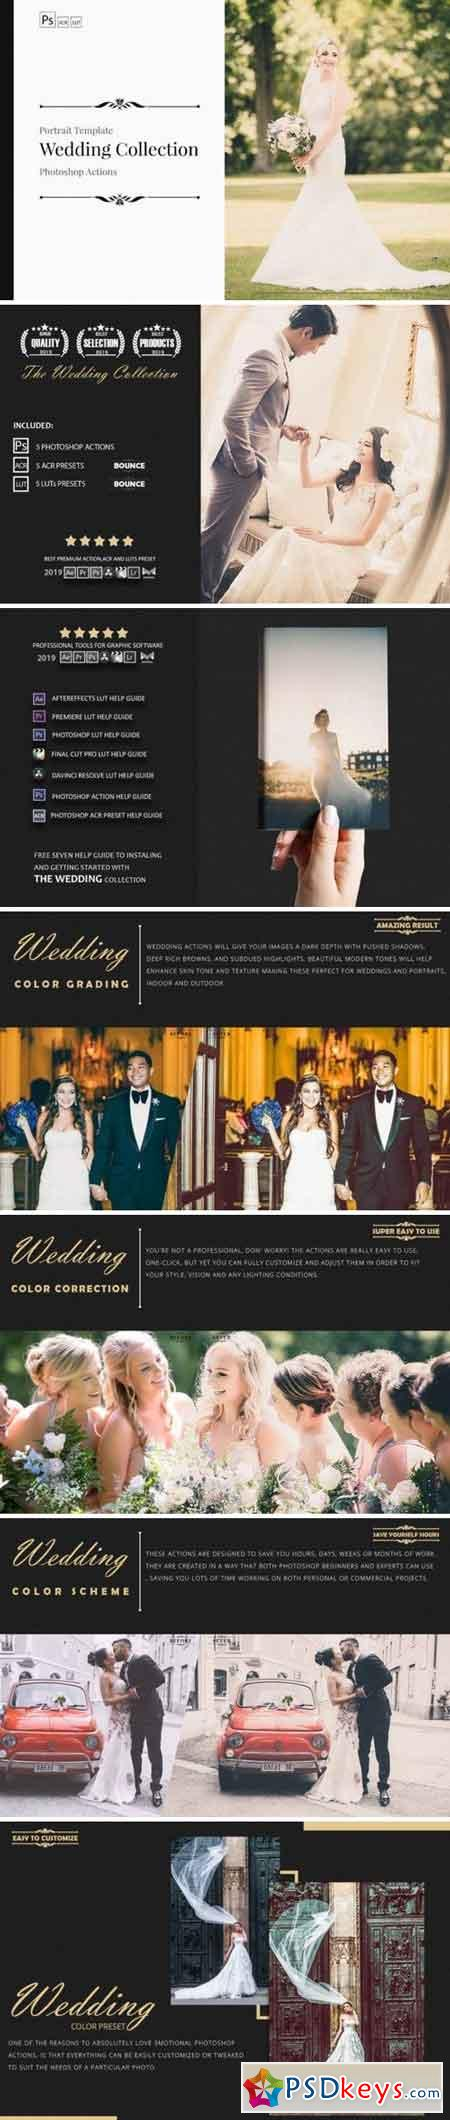 Neo Wedding Color Grading photoshop actions